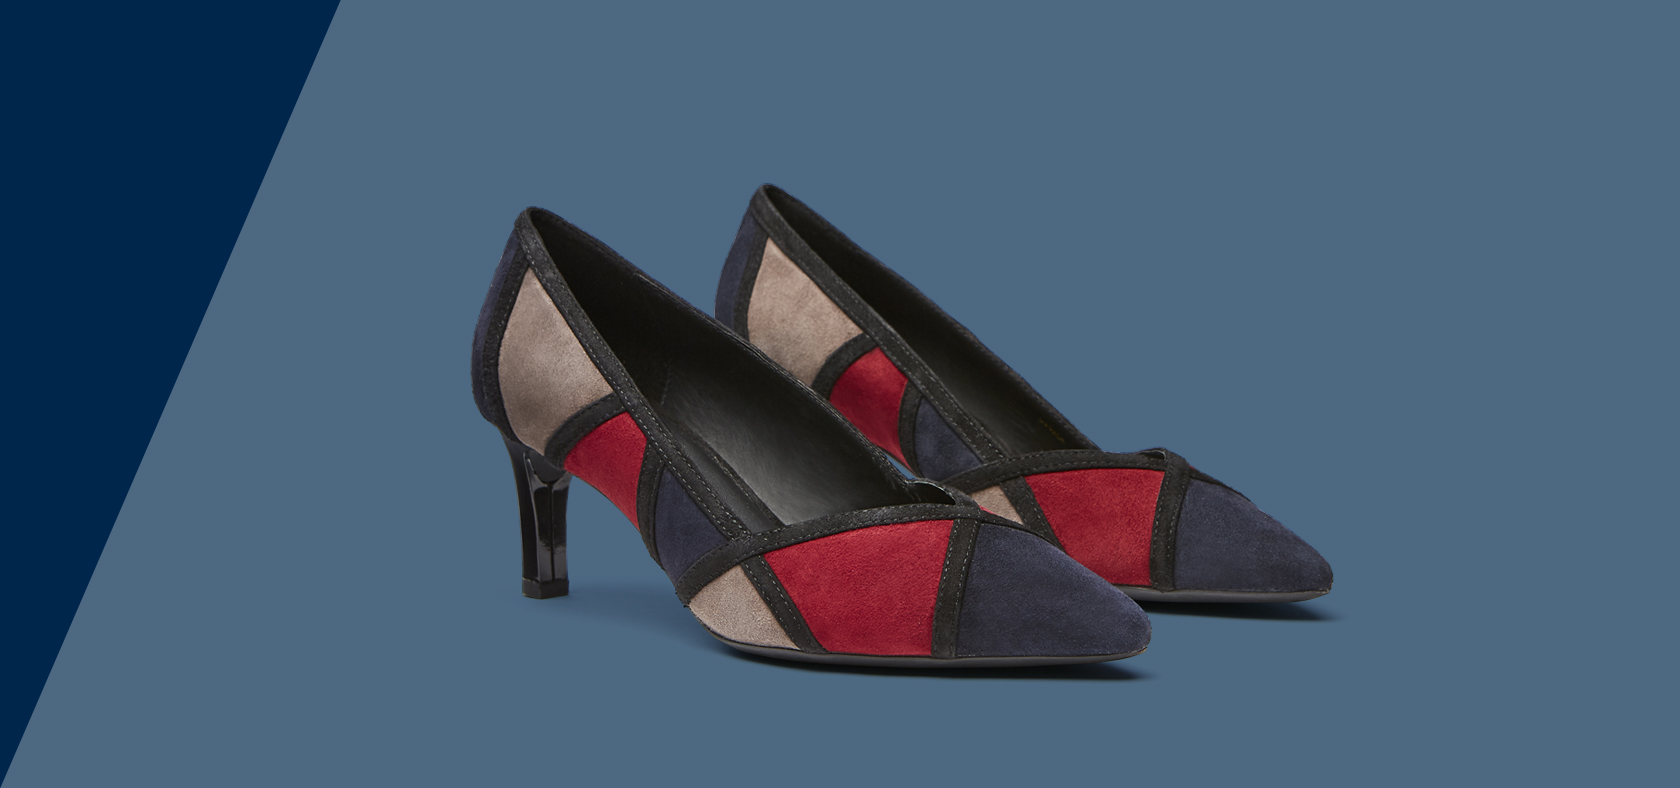 Comfortable and Breathable Women's Pumps Shoes | Geox